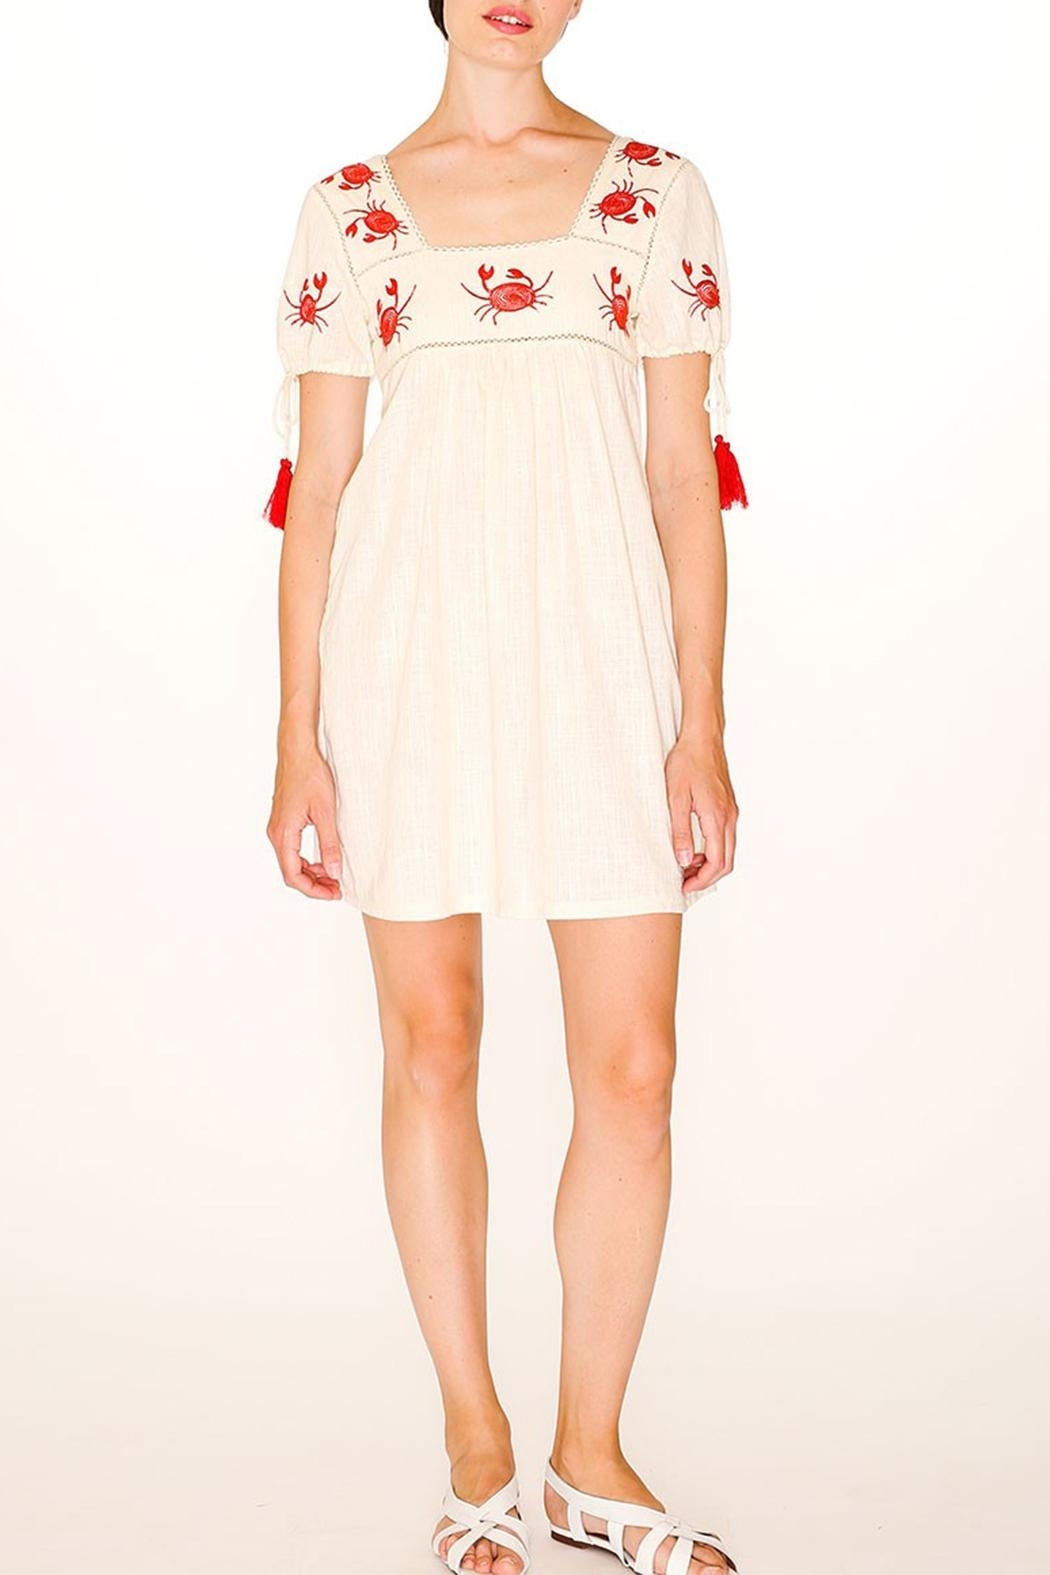 PepaLoves Crab Embroidered Dress - Back Cropped Image